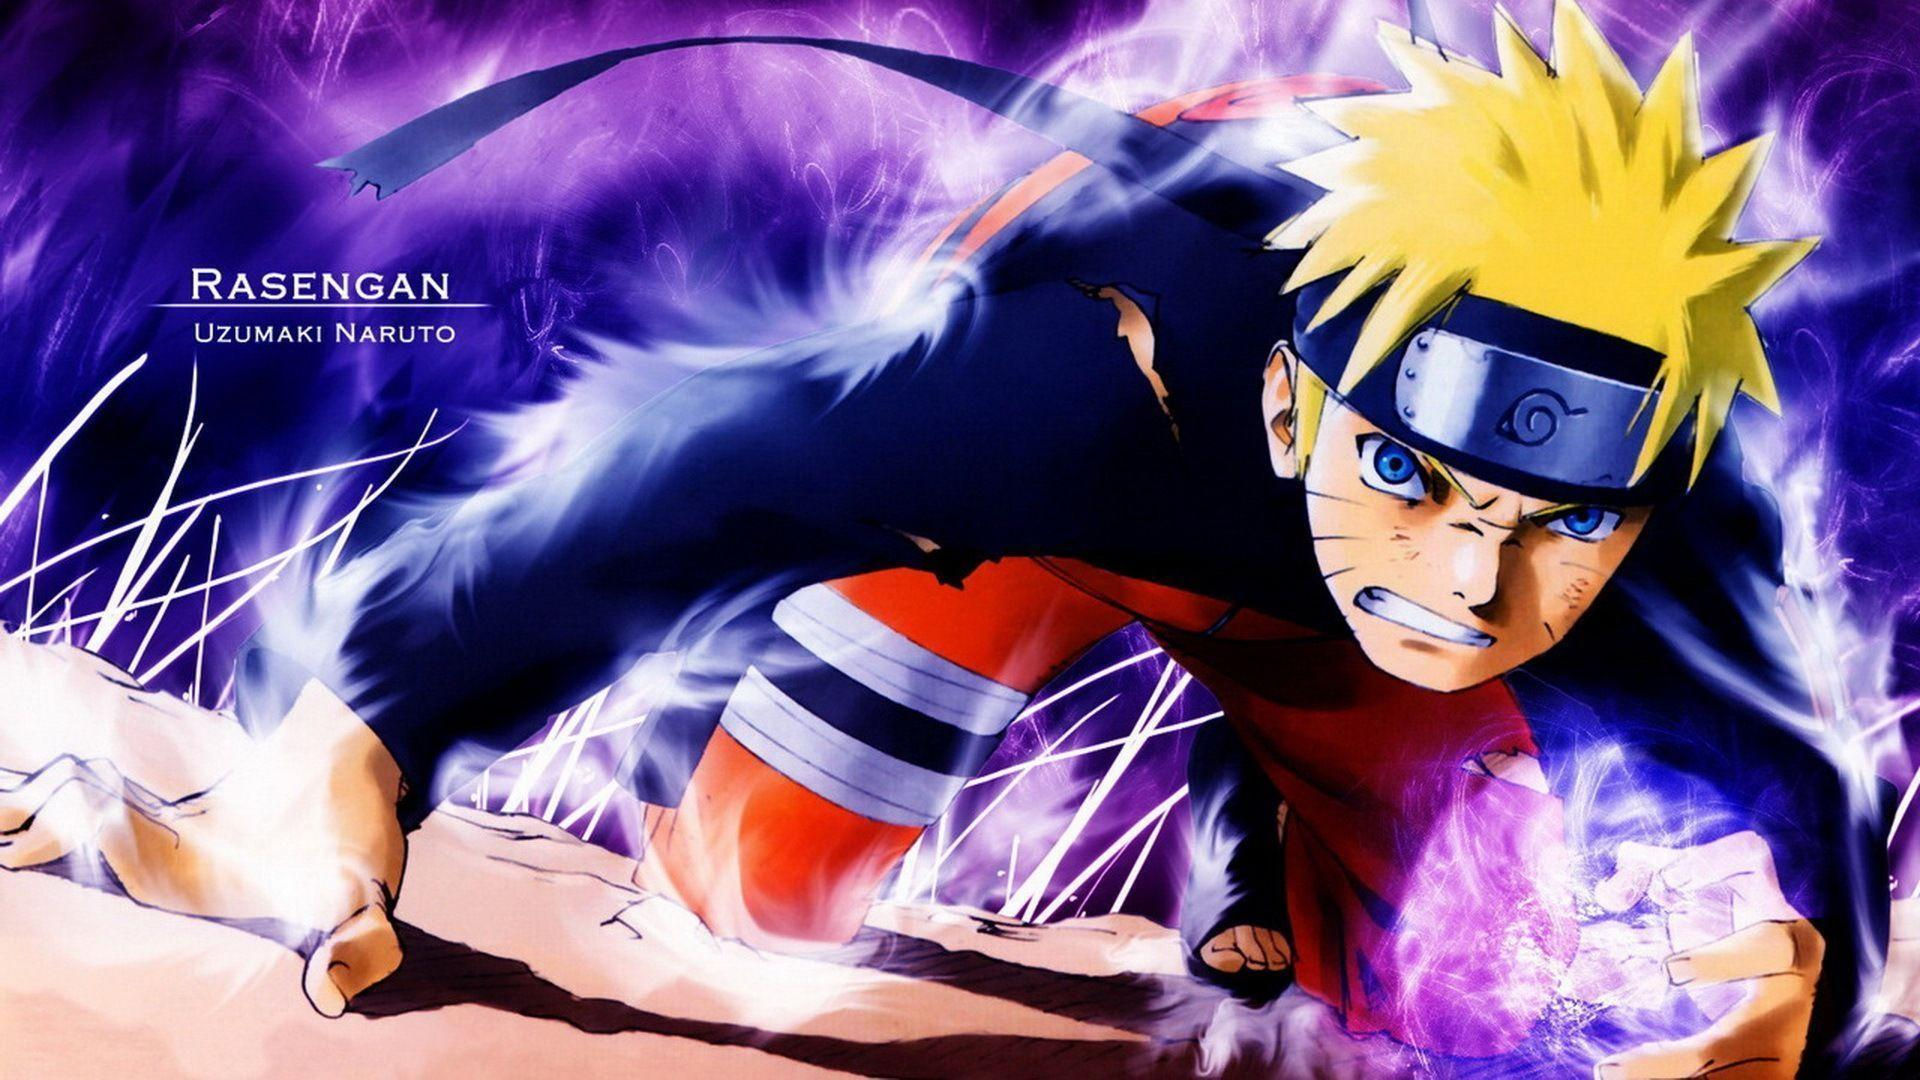 Wallpapers Cool Naruto Cartoon 1920x1080PX ~ Wallpapers Naruto